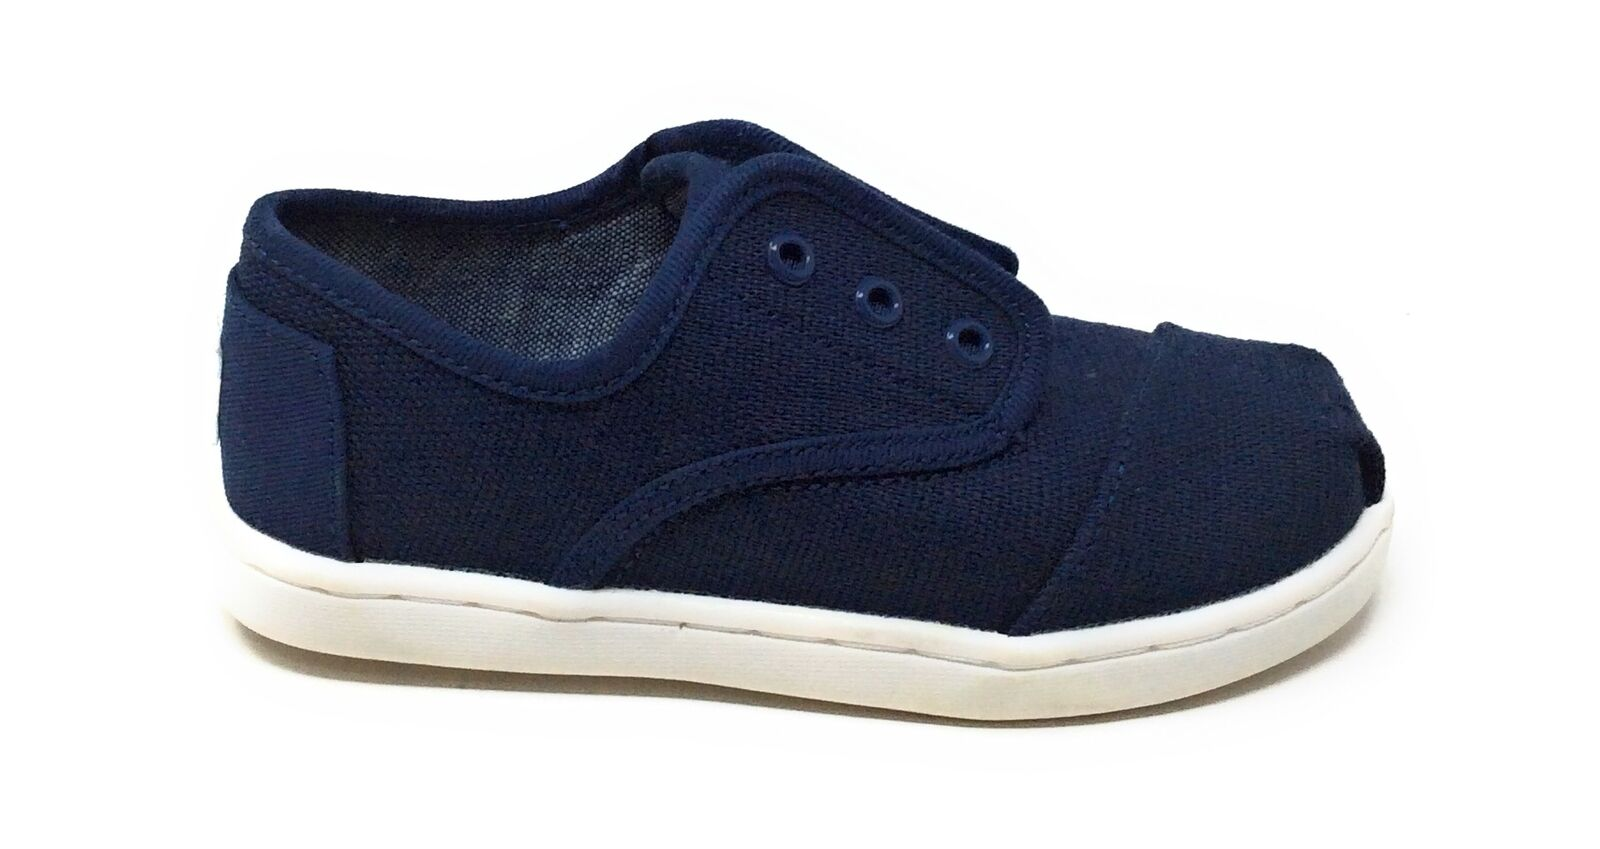 Toms Tiny Baby Cordones Sangle Dentelle Crib Chaussures Bleu Marine Heritage Toile Taille 9 T